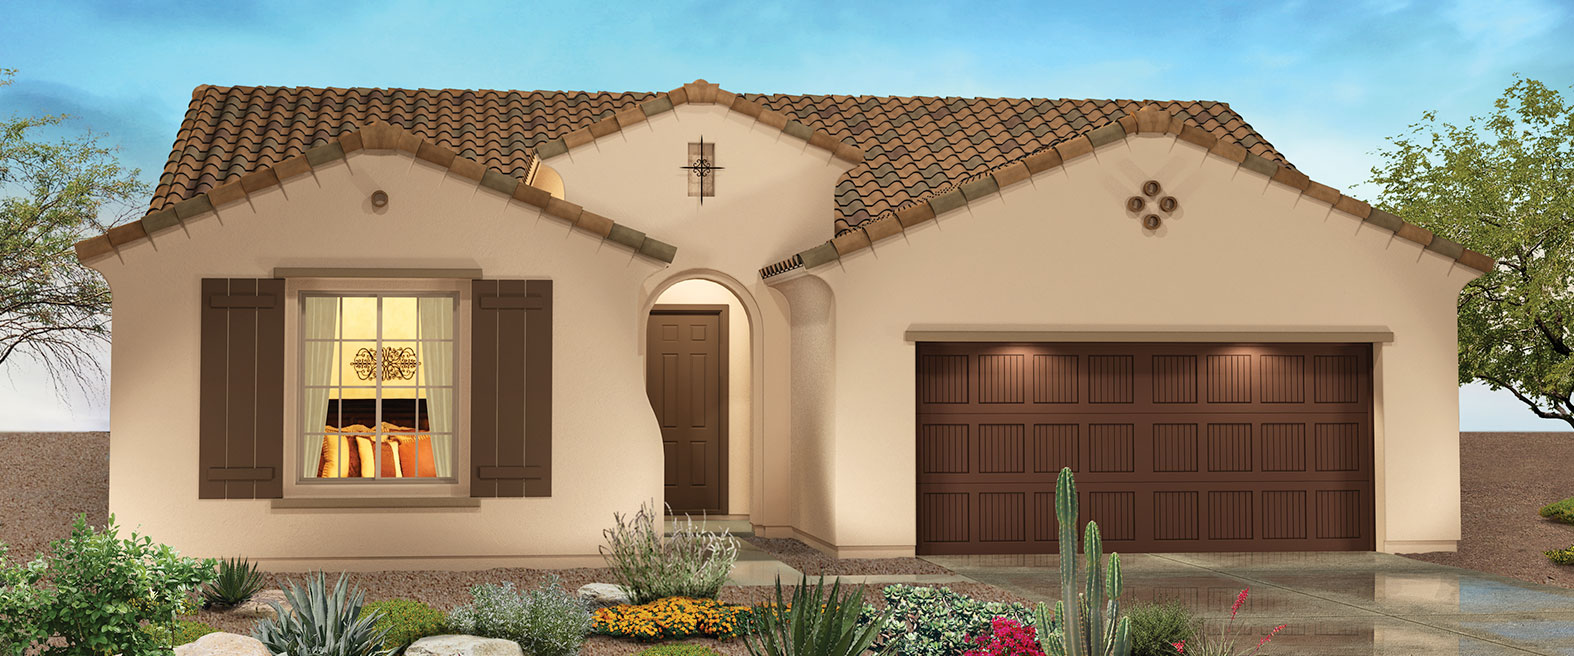 PEBBLE CREEK - TRADITION SERIES HOMES